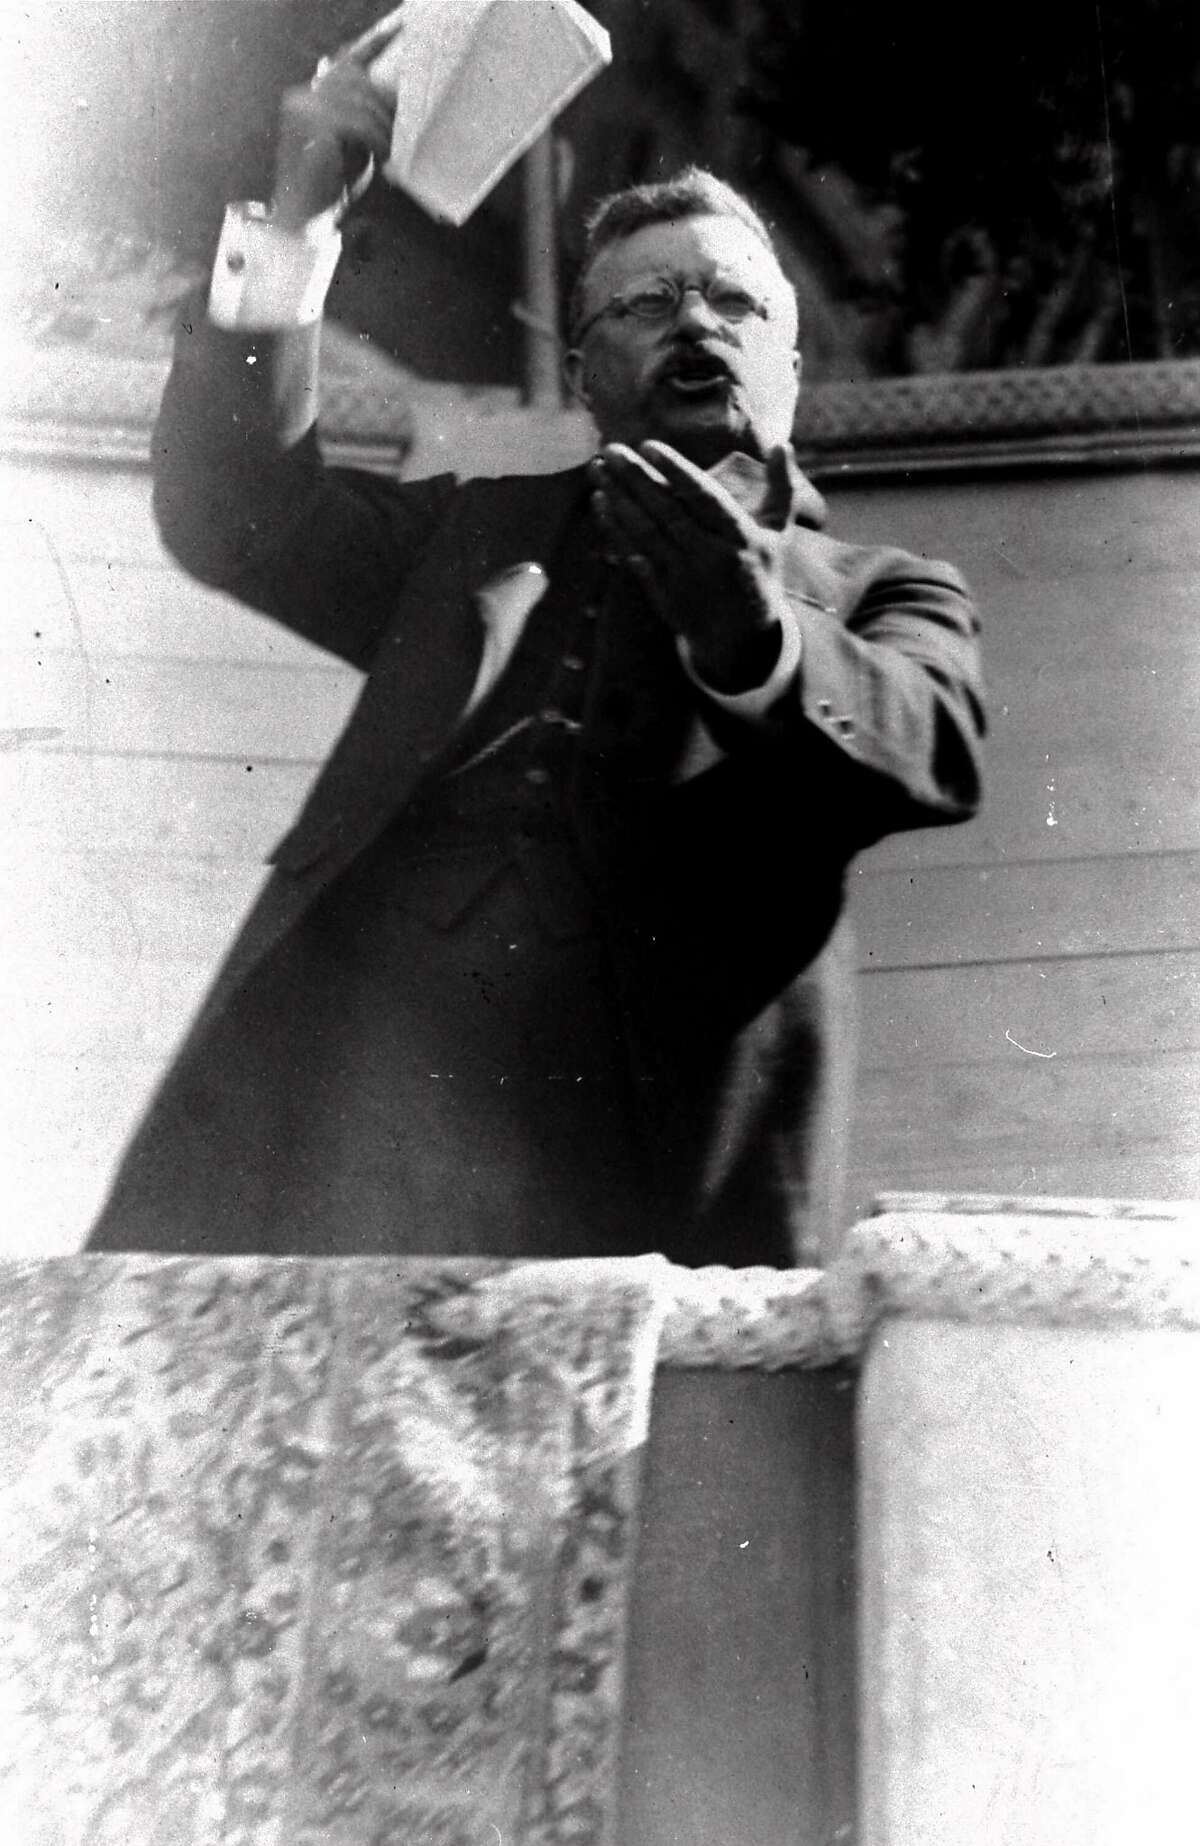 Theodore Roosevelt delivers a fiery address to a crowd of some 50,000 on July 21, 1915. A similar image of Roosevelt was captured on early documentary movie footage prserved in the U.S. Library of Congress' collection of about 300,000 films.